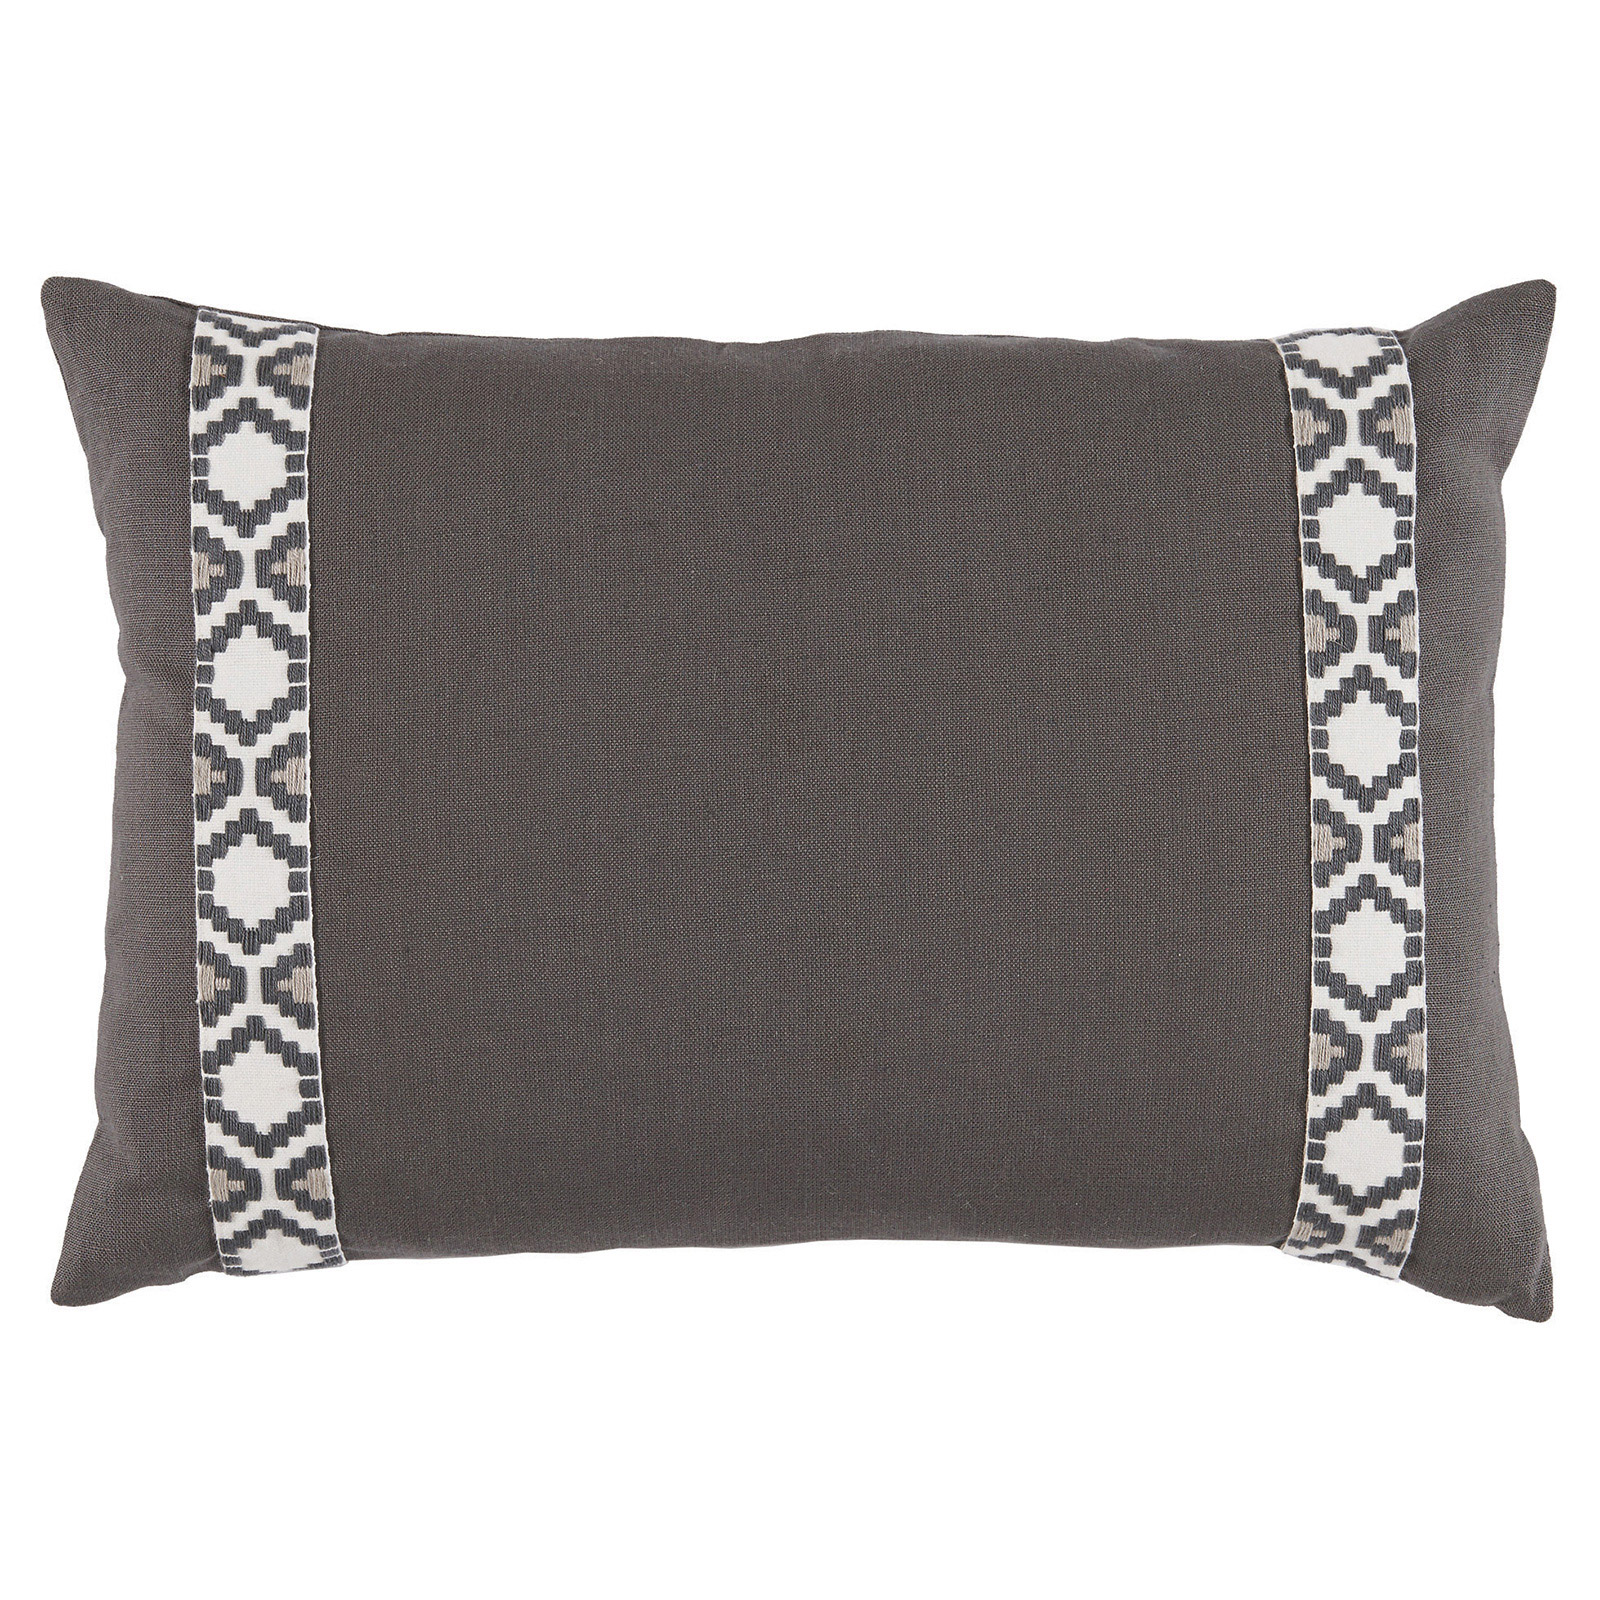 Kaia Global Charcoal Linen Trim Band Pillow - 13x19